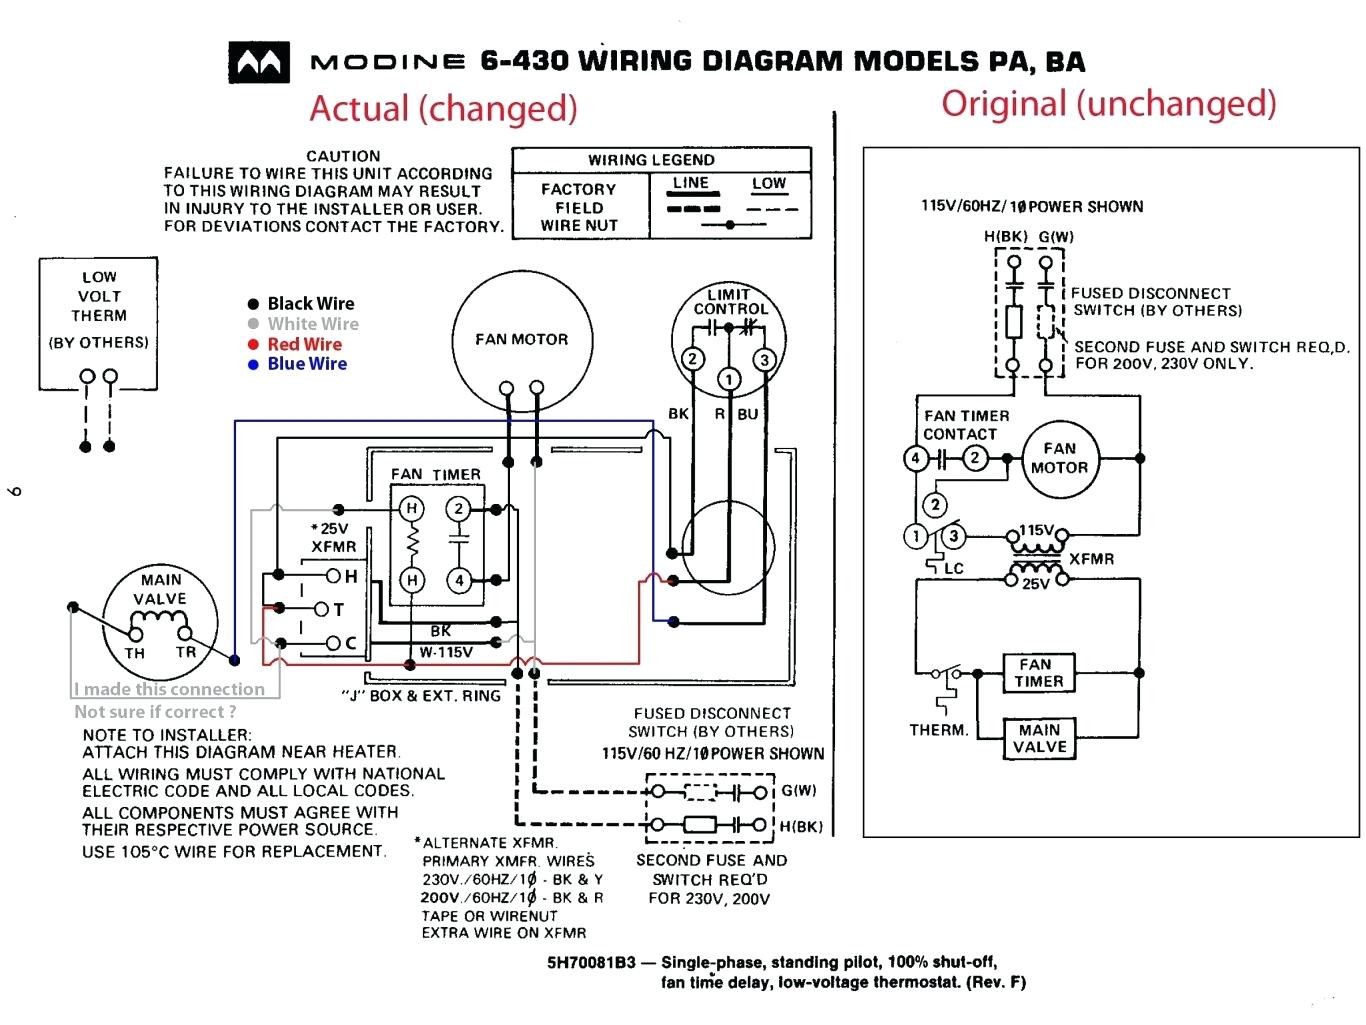 aube rc840t 240 wiring diagram Collection-Aube Rc840t 240 Wiring Diagram Inspirational Furnace thermostat Wiring Diagram Rv Shower Valves thermostatic 14-h